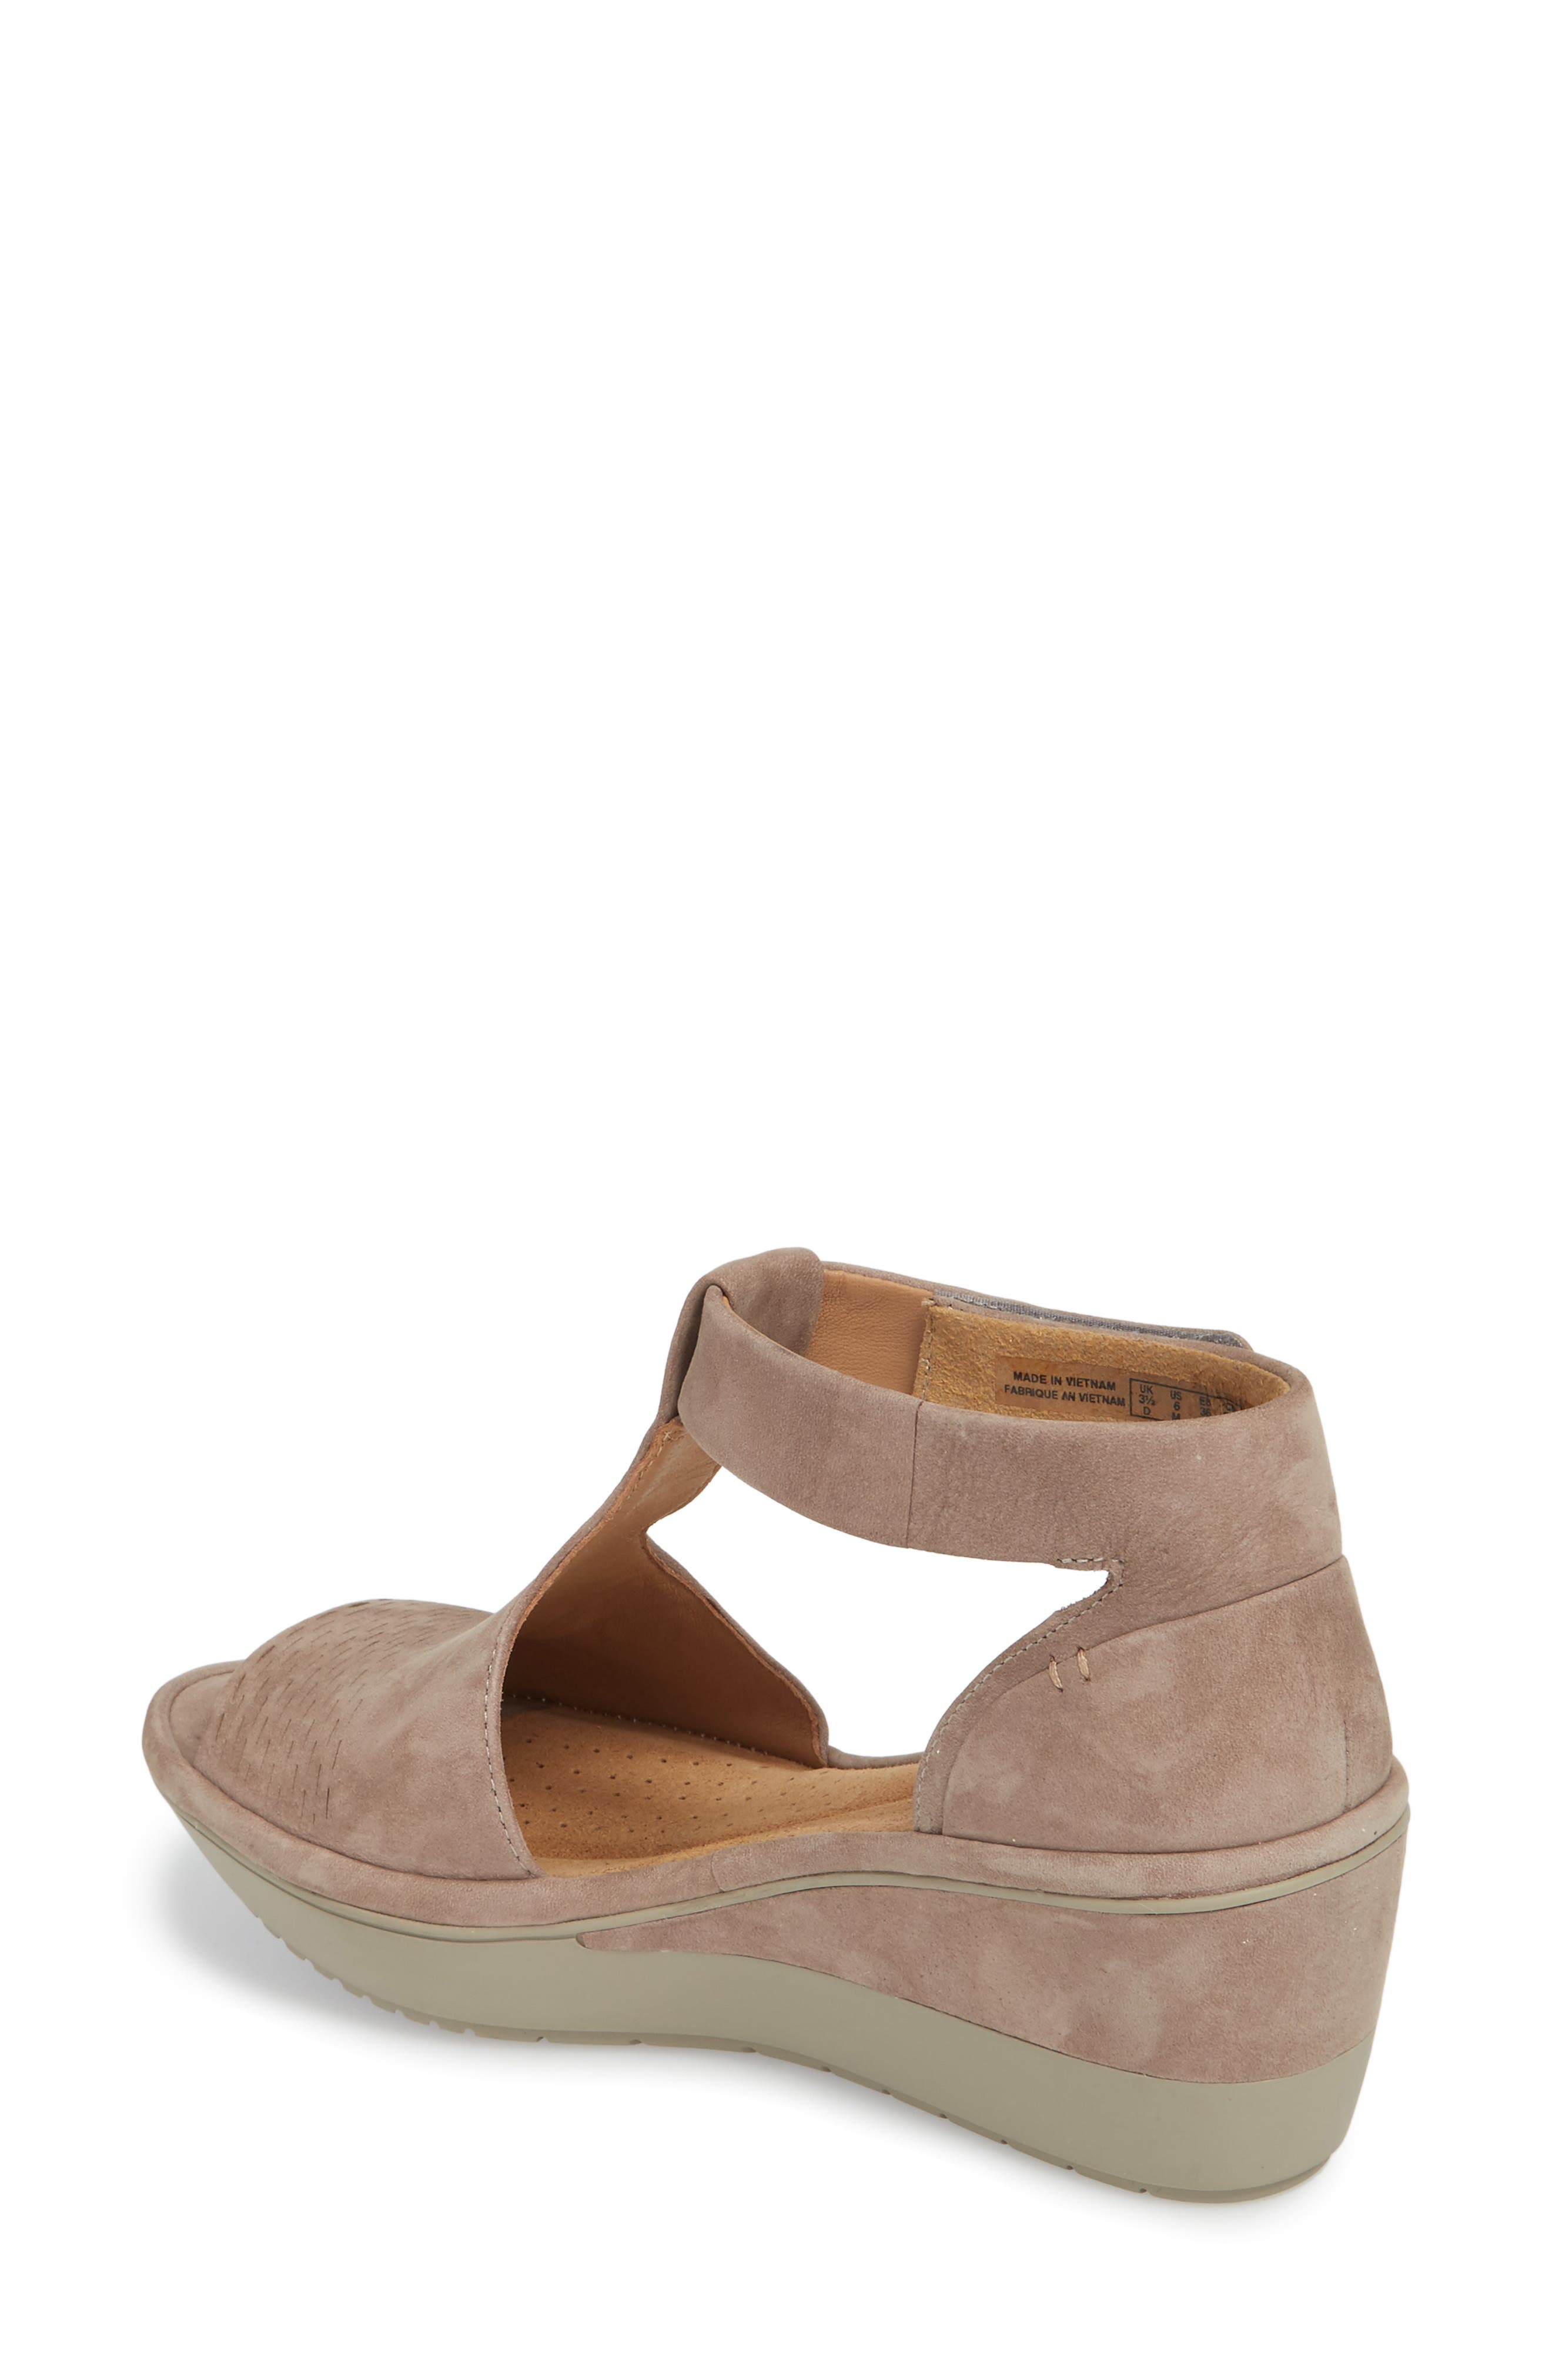 Wynnmere Avah T-Strap Wedge Sandal,                             Alternate thumbnail 2, color,                             Warm Grey Nubuck